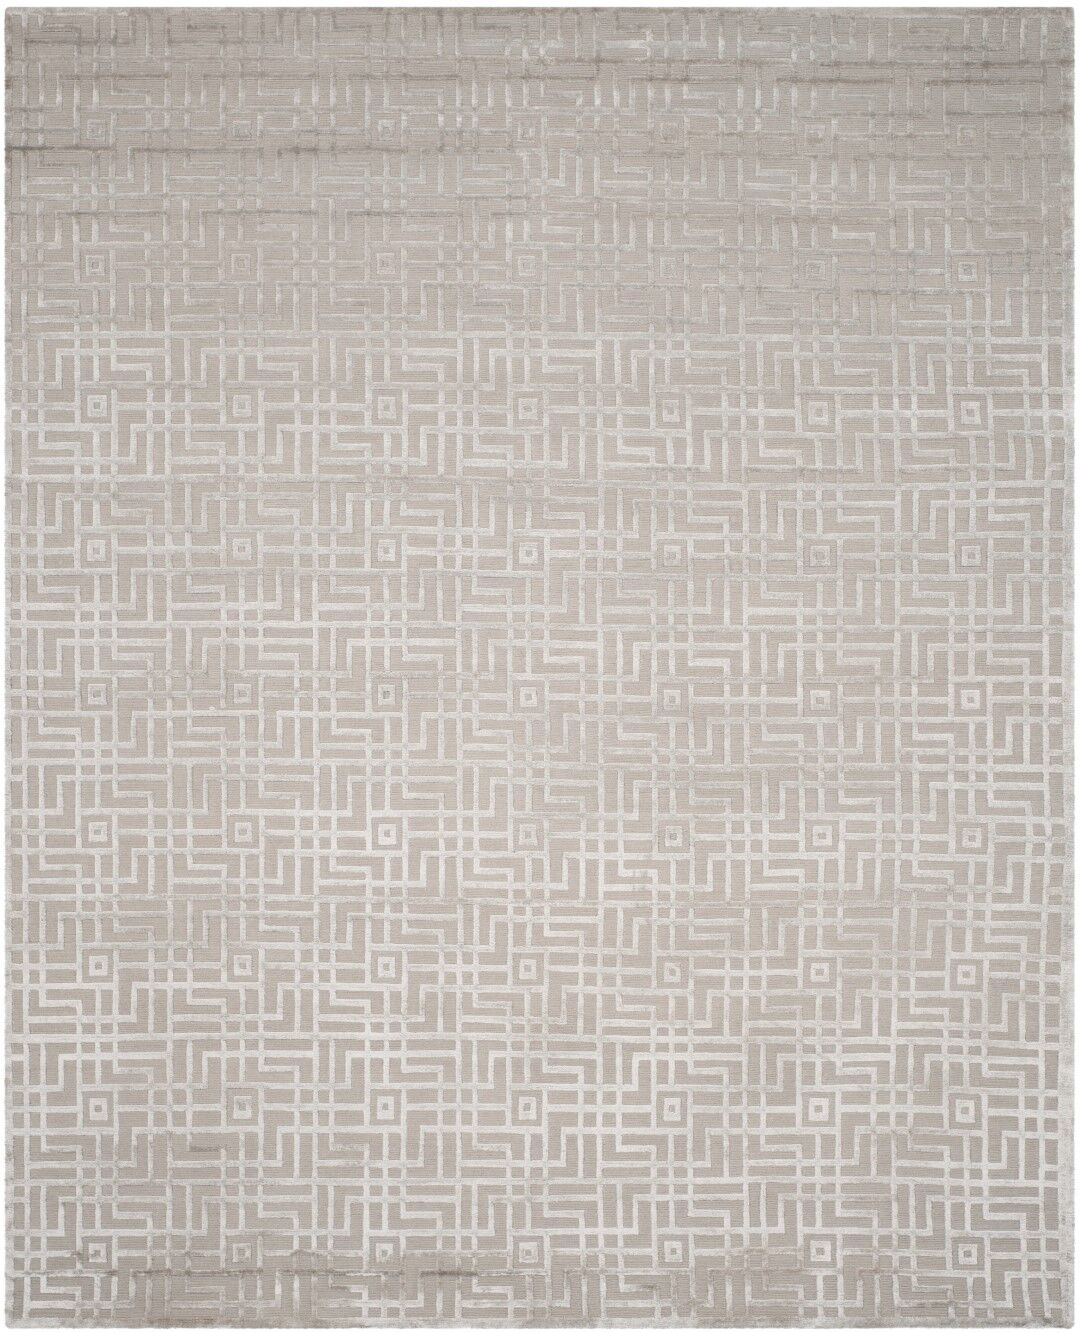 Ocellus Hand-Knotted Gray Area Rug Rug Size: Rectangle 10' x 14'